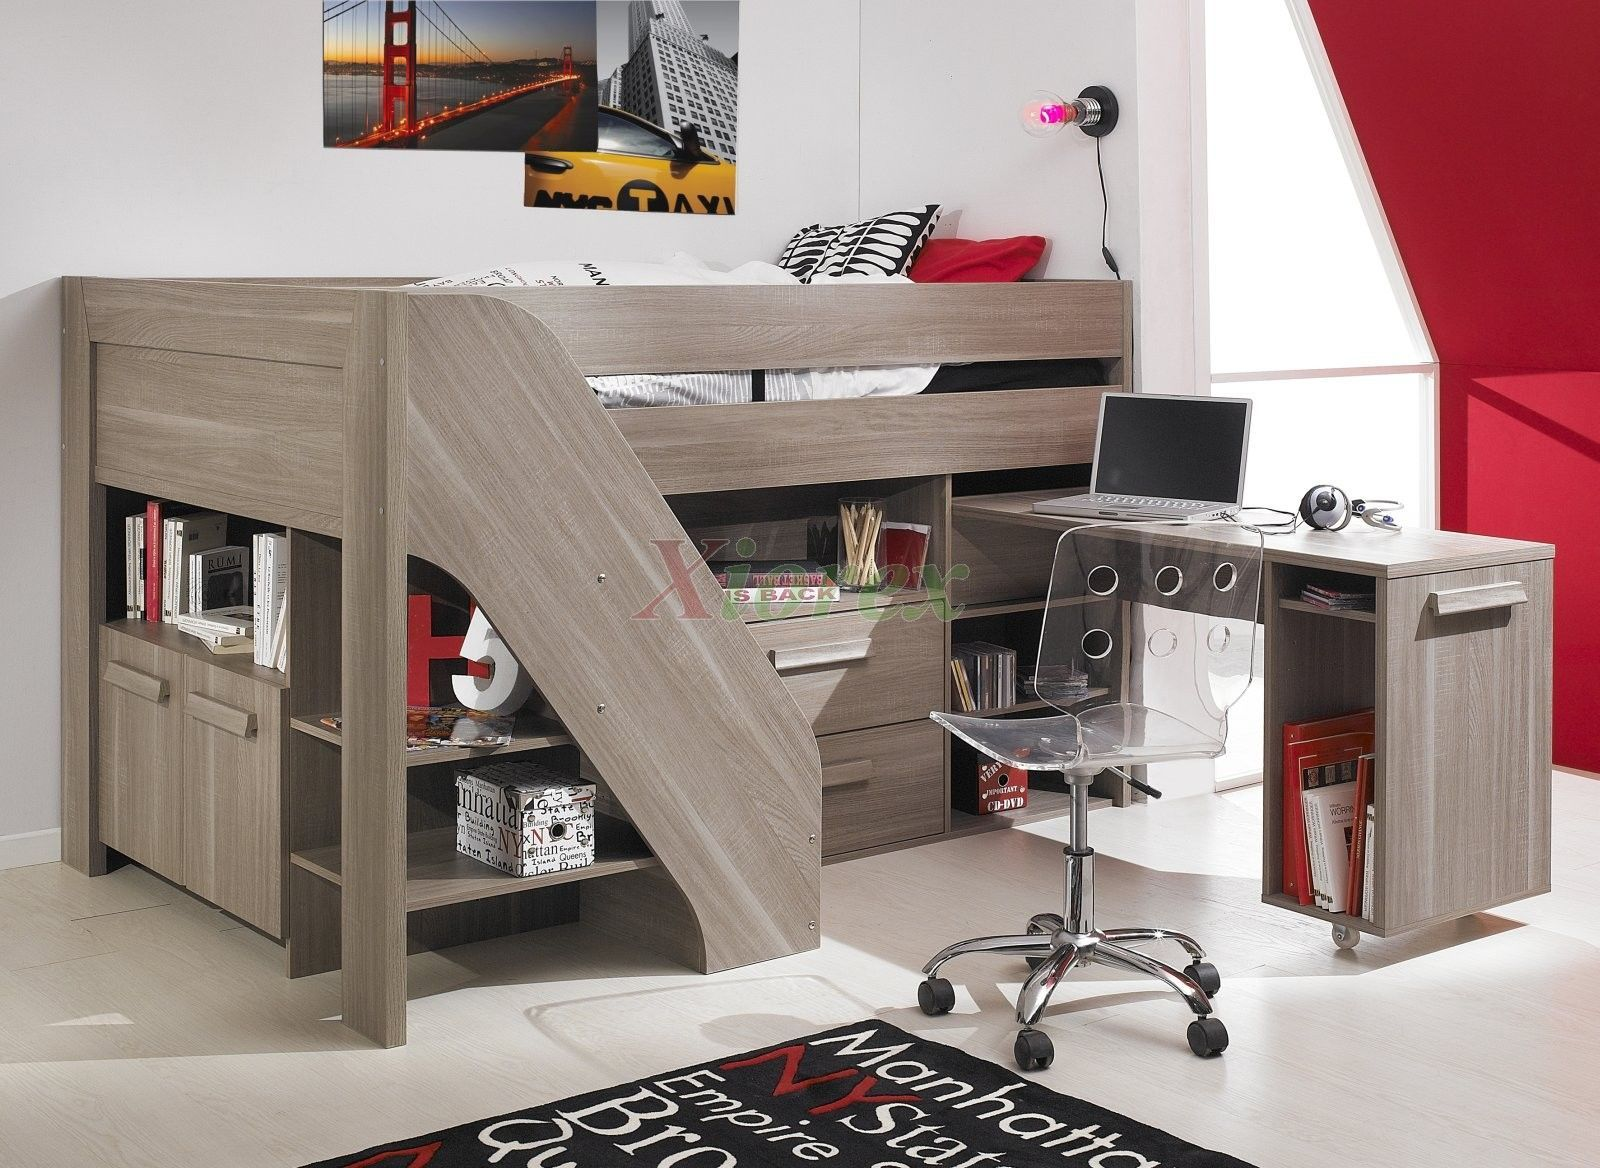 Loft bed with slide out desk  Loft Bed With Stairs And Desk Plans  Finnu s room  Pinterest